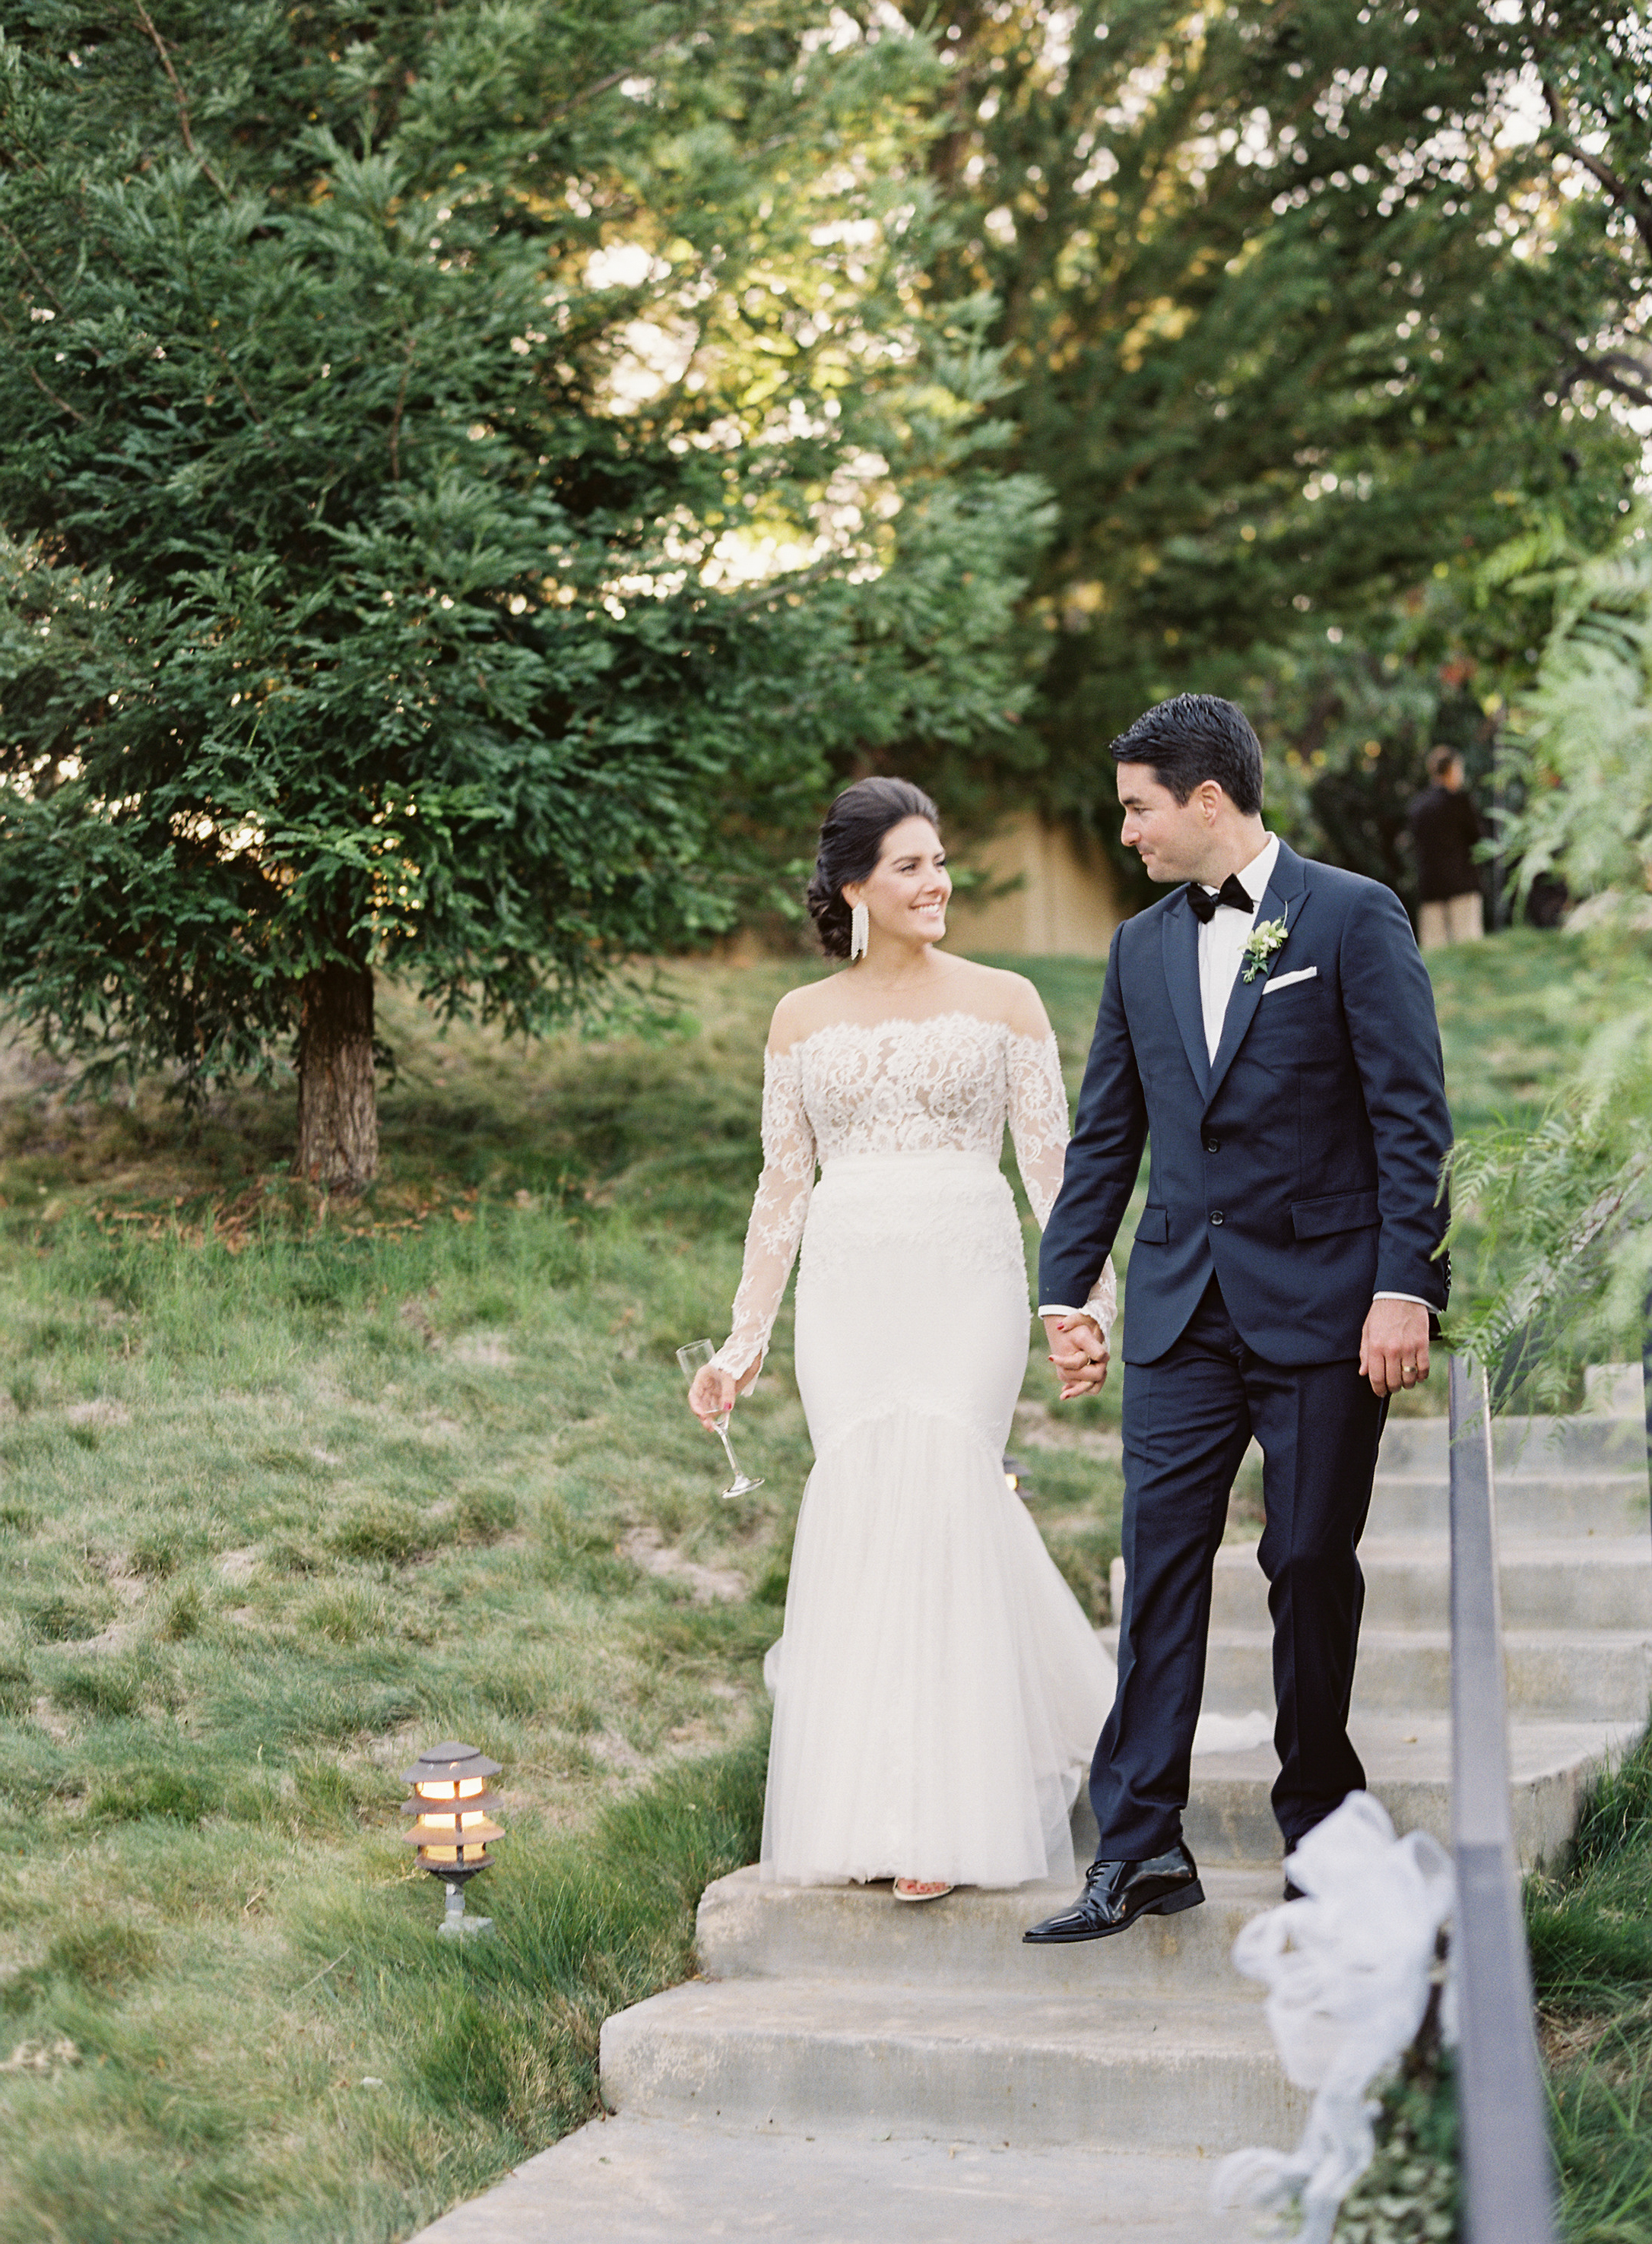 Meghan Mehan Photography - Carmel Valley Ranch Wedding 024.jpg